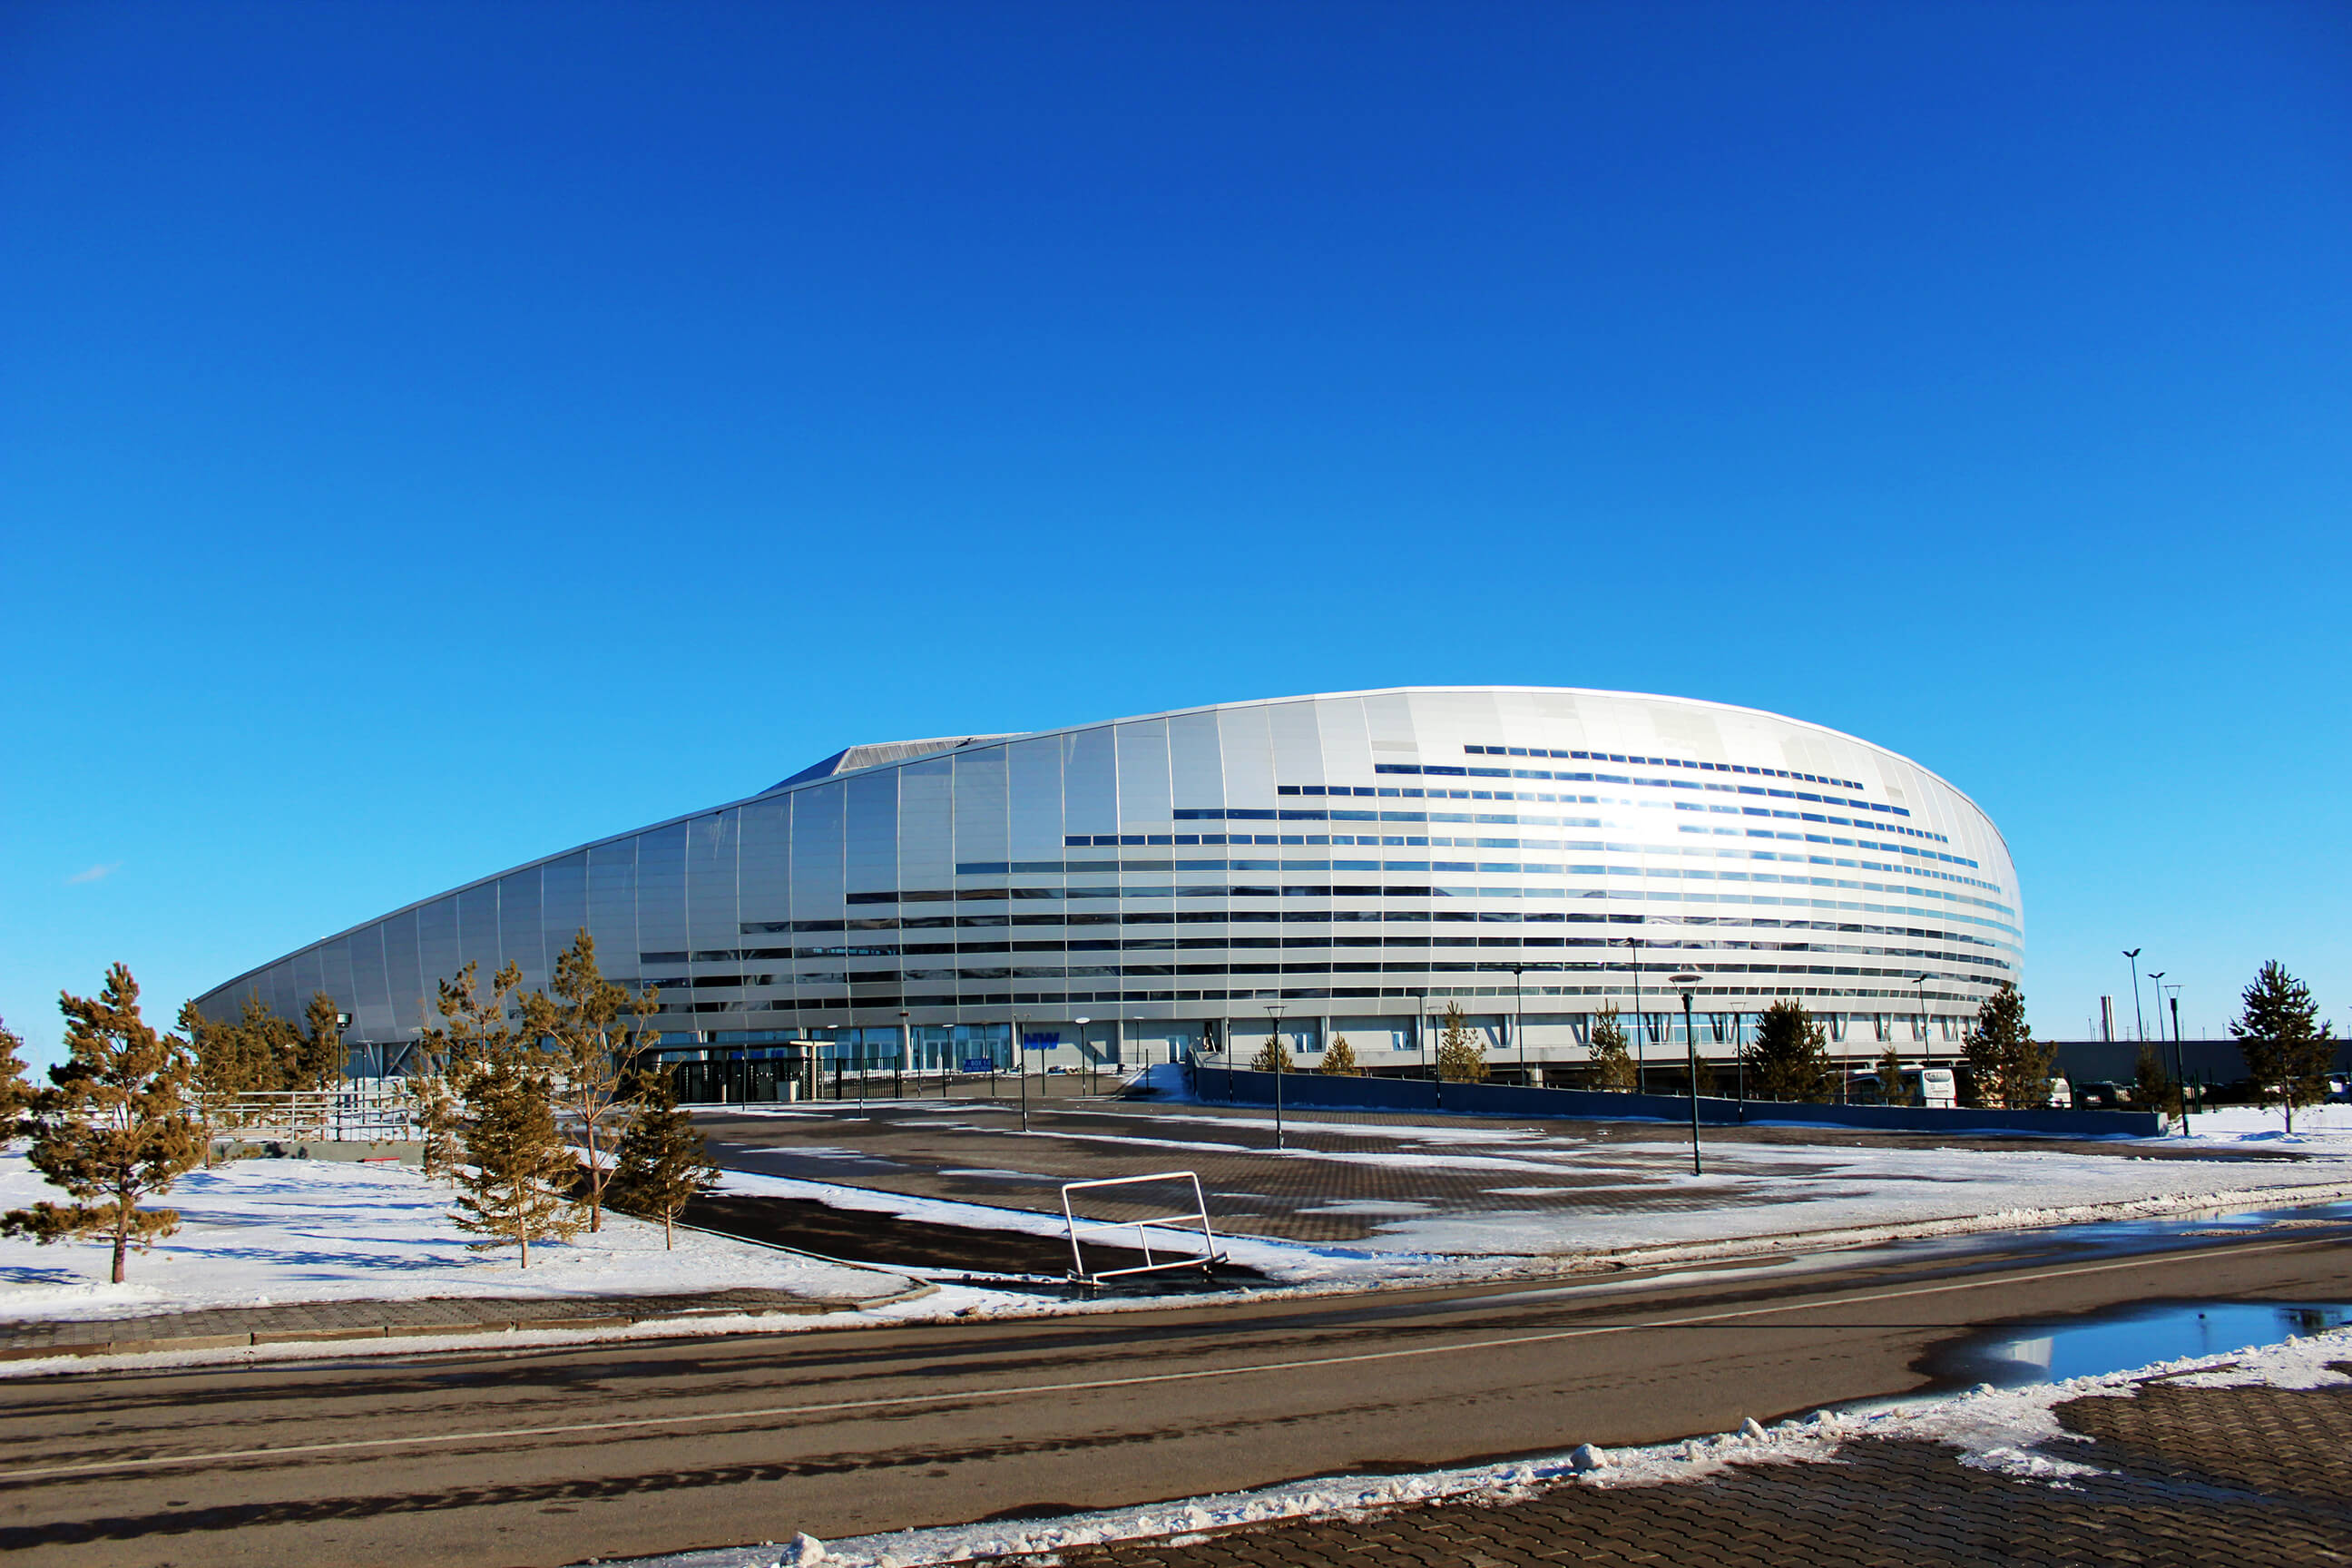 HyCOMB's aluminium honeycomb panels used for exterior cladding at Astana Area; Khazakstan's national football stadium.